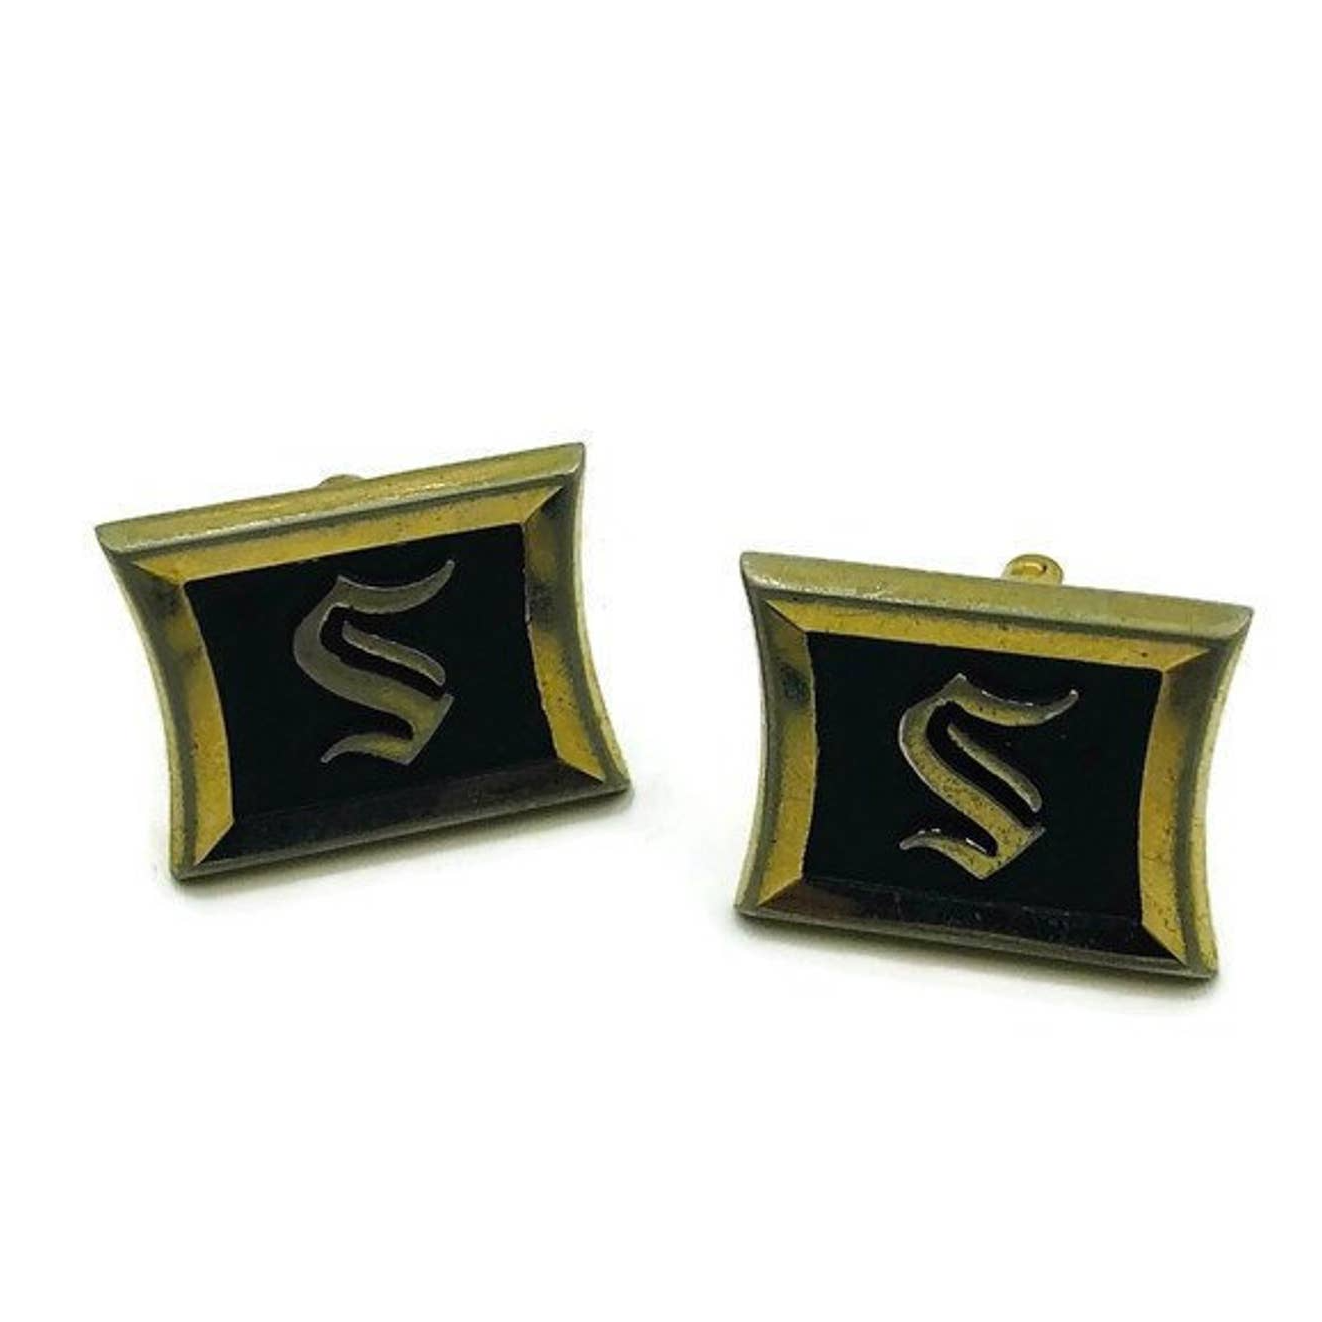 Vintage Black and Gold Monogramed Square Initial S Cuff Links Signed USA